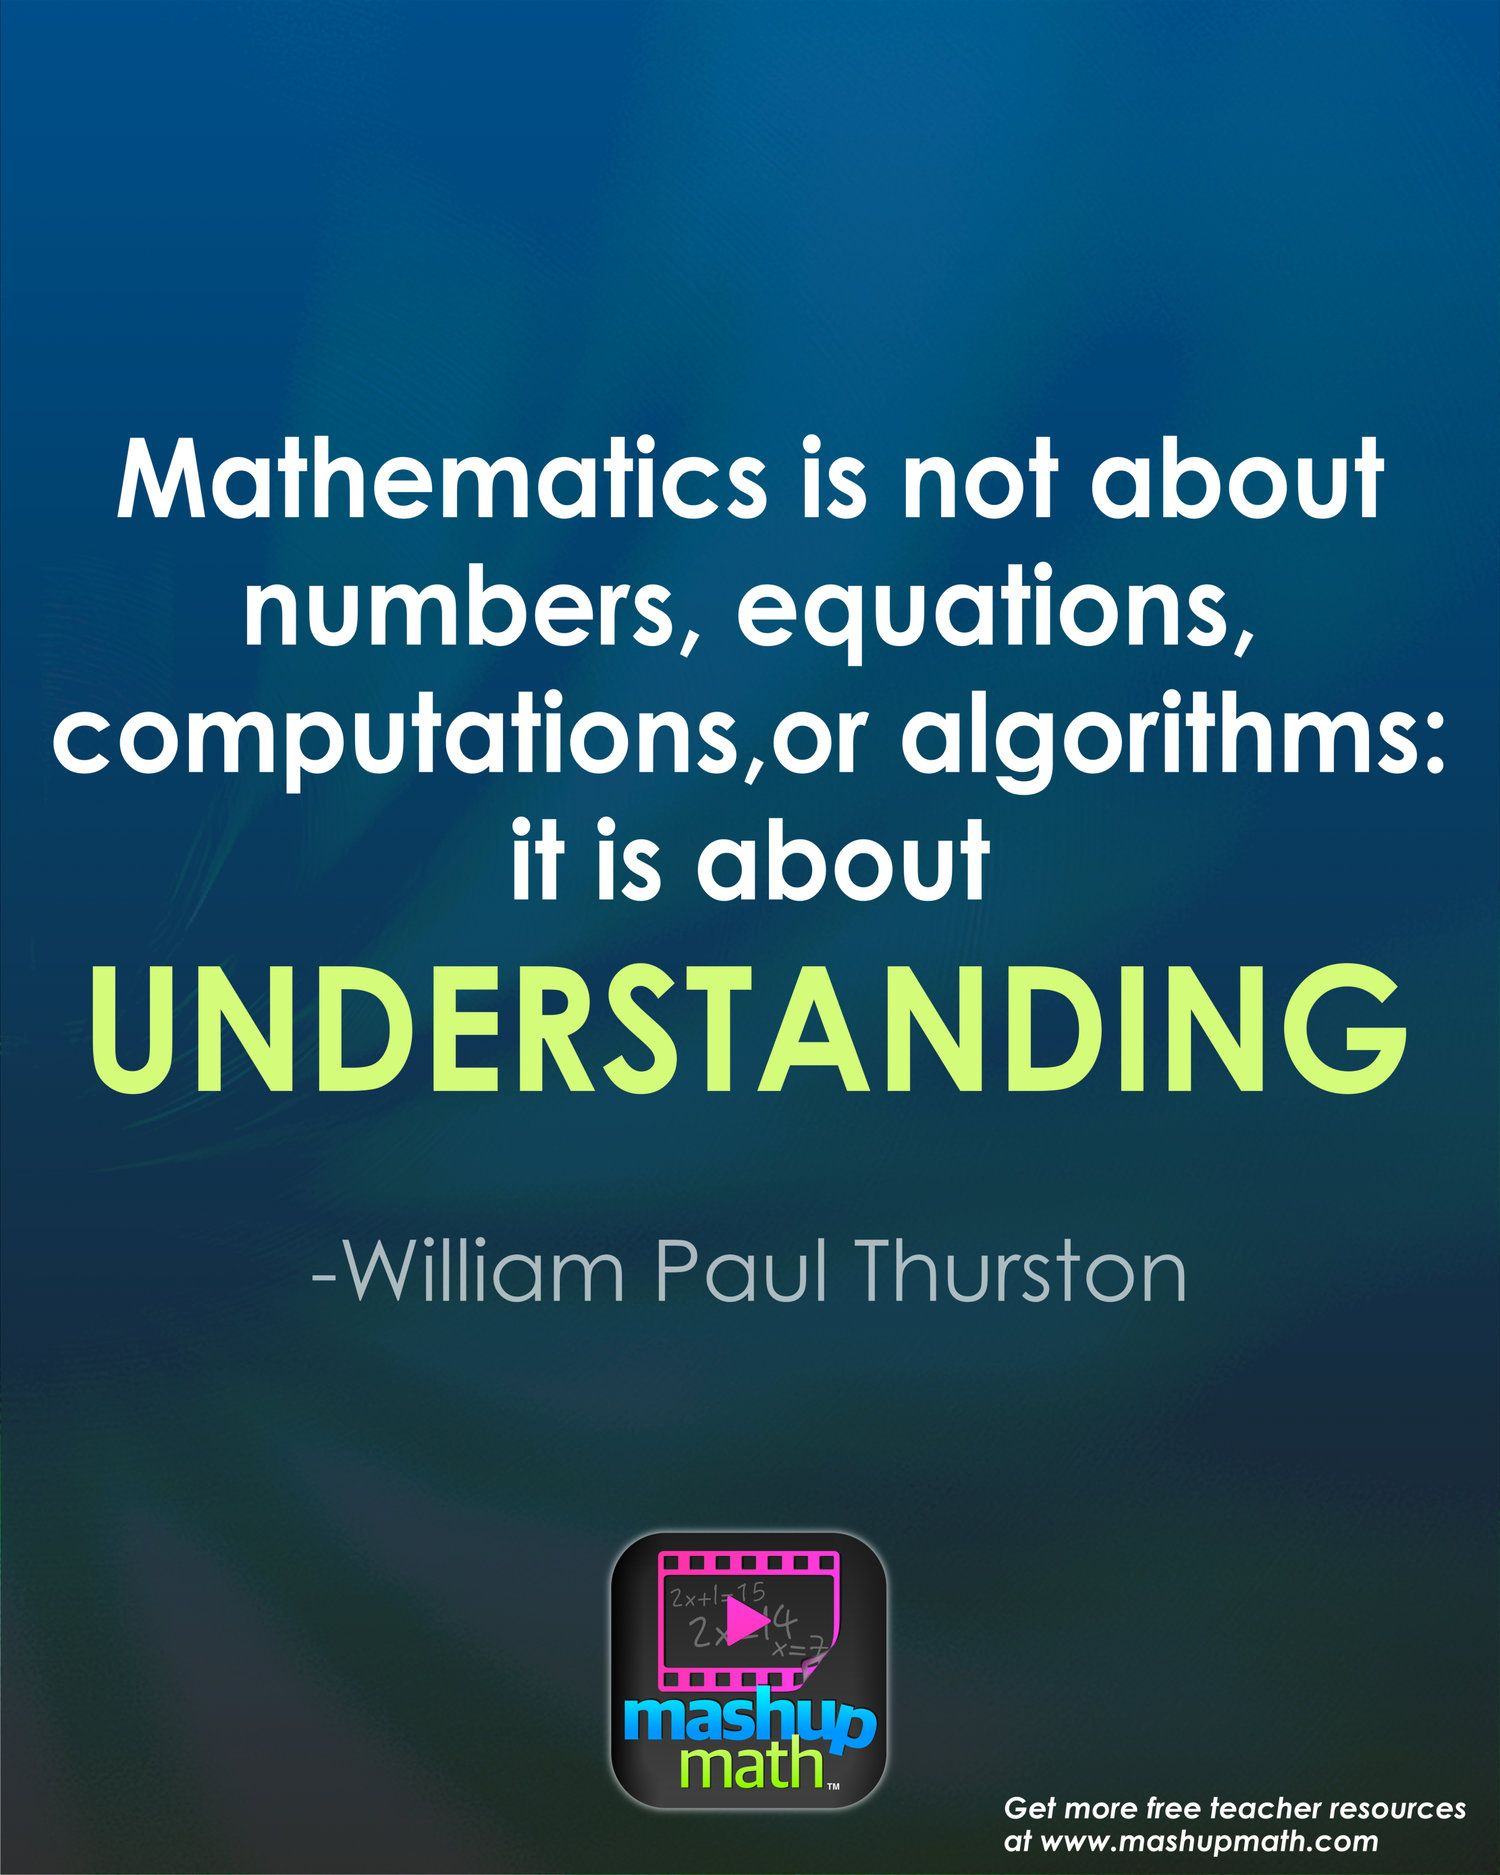 Teaching Maths 17 Groovy Math Quotes To Post In Your Classroom Math